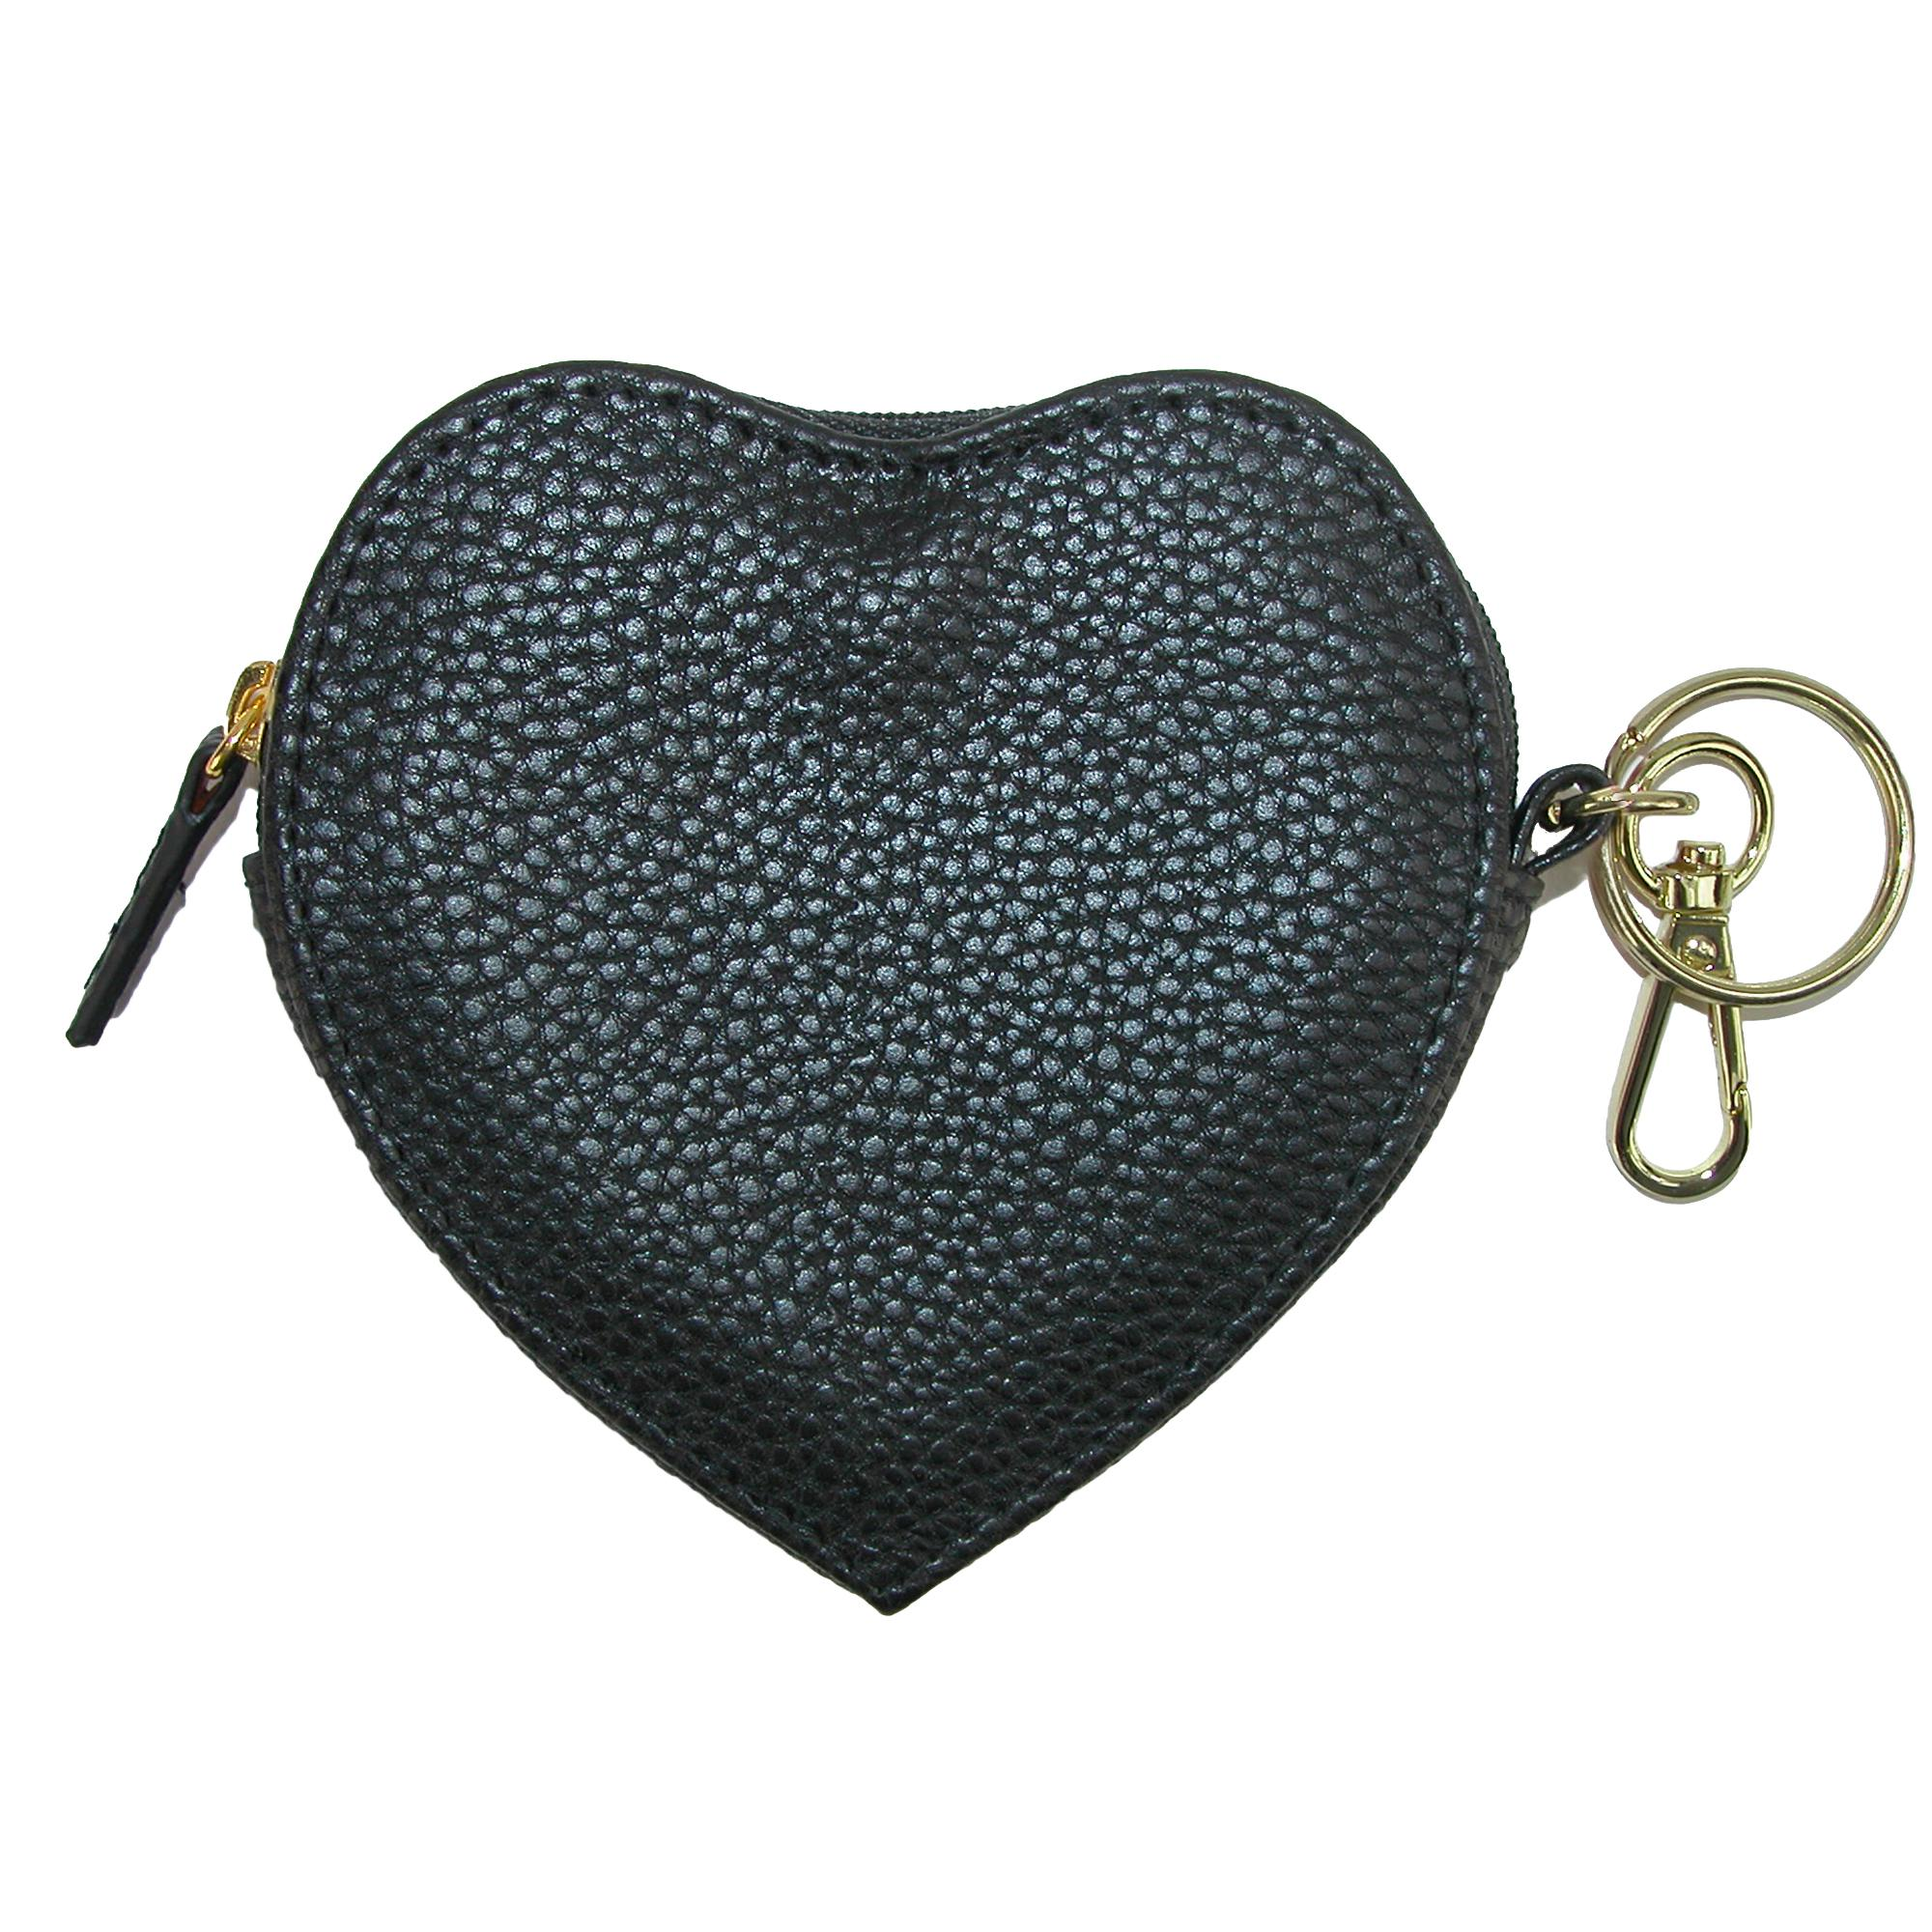 Buxton Heart Shaped Coin Purse Wallet - Black one size (BX-415W15-BLK BX-415W15) photo